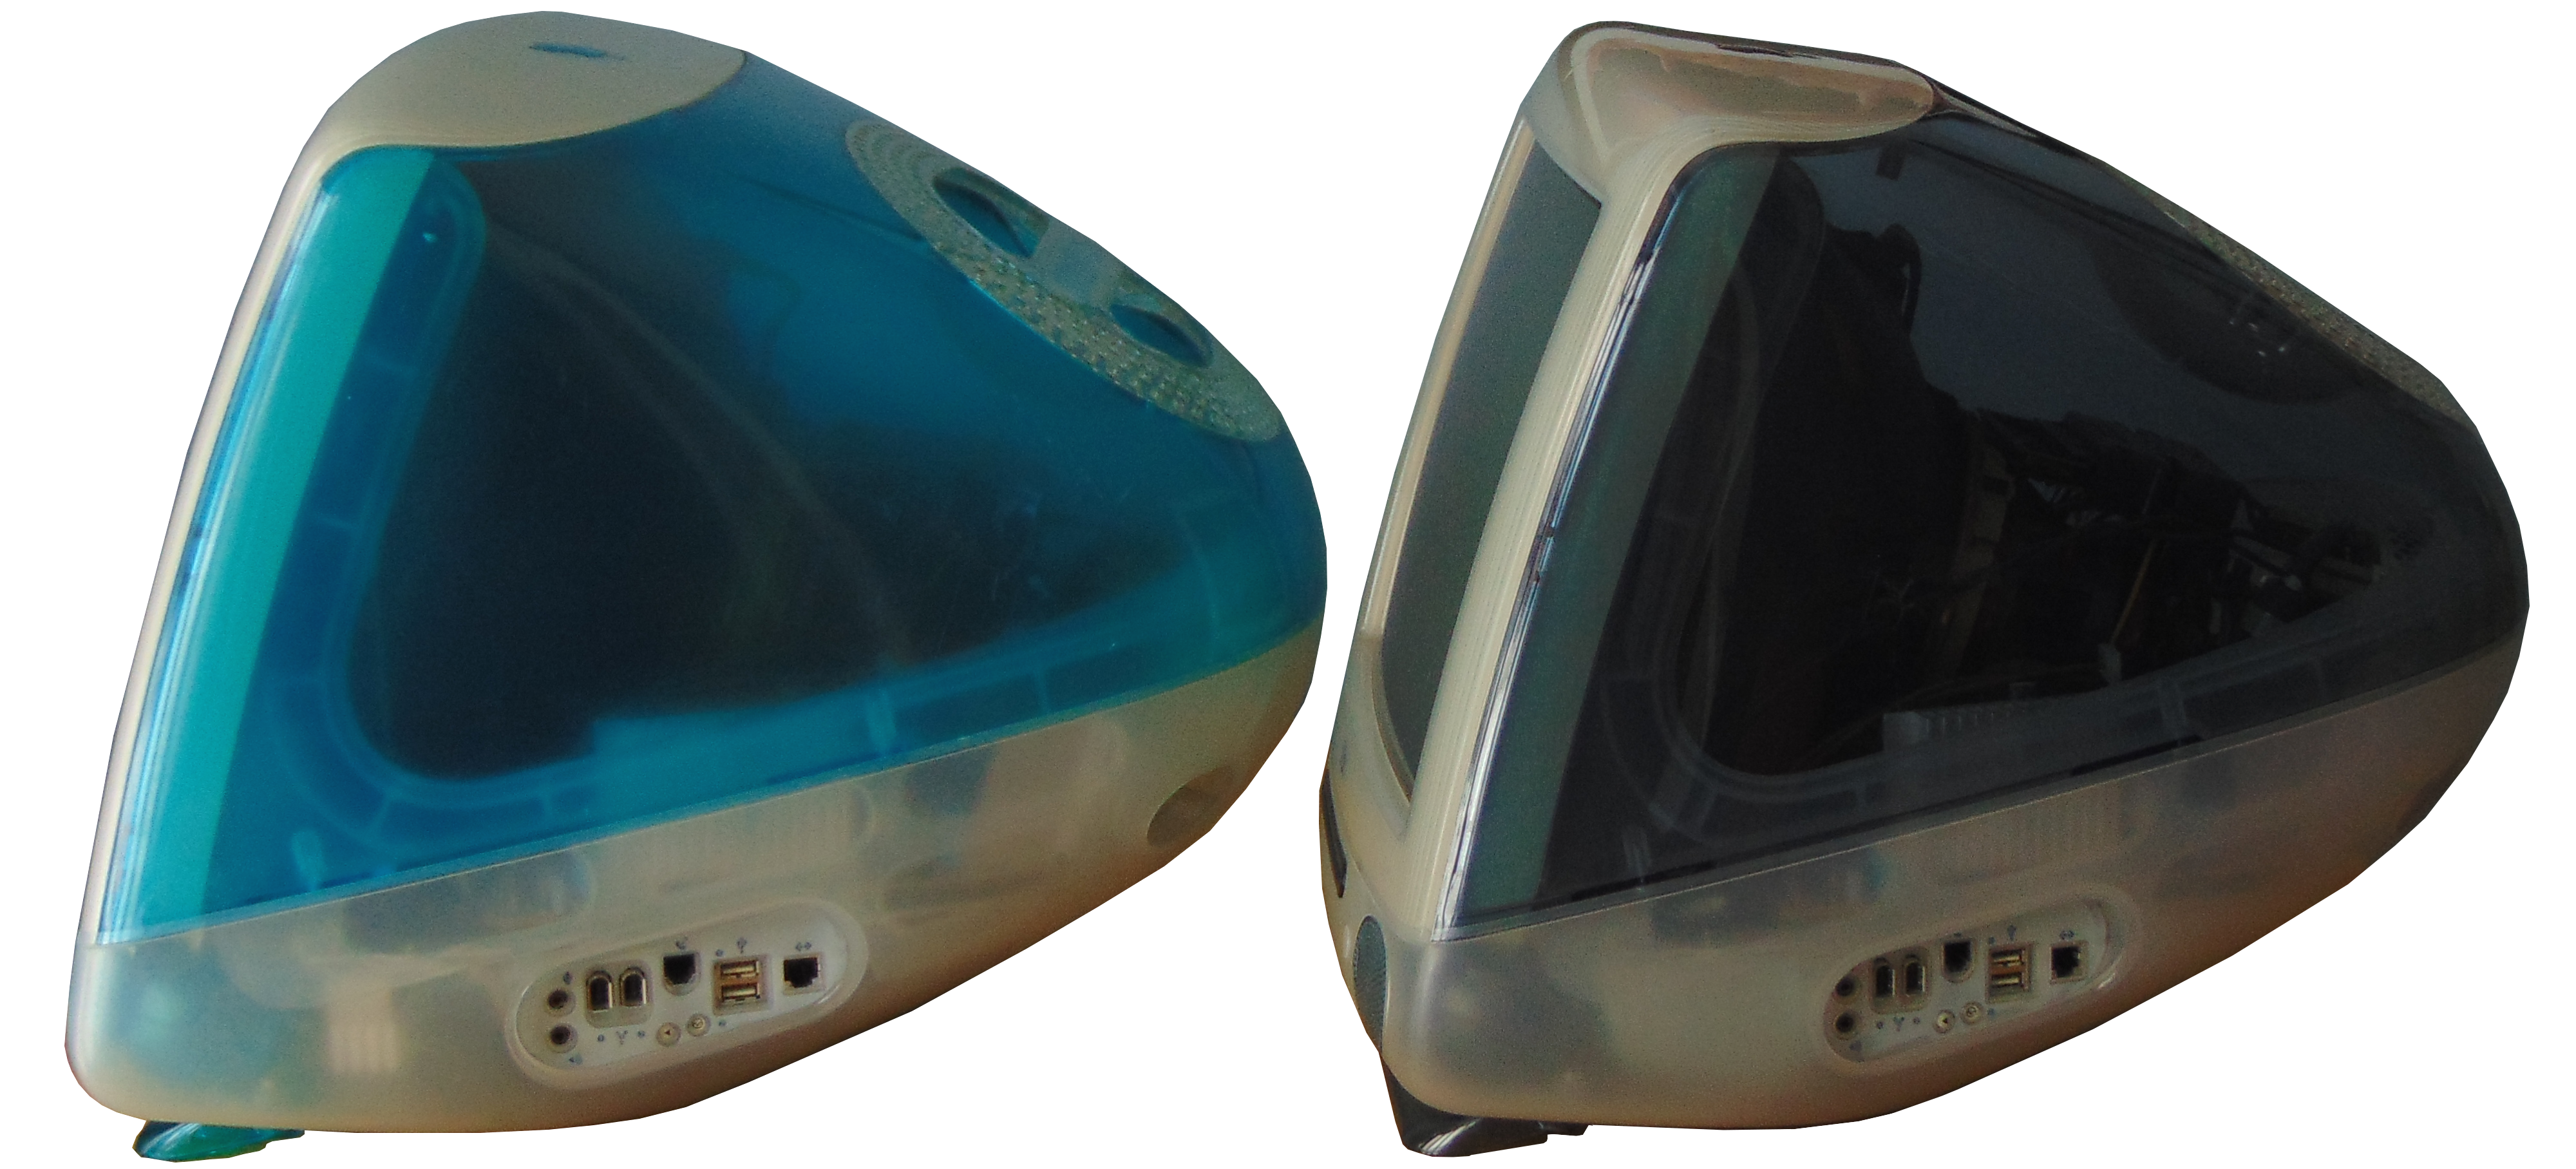 Imac transparent graphite. File blueberry and png